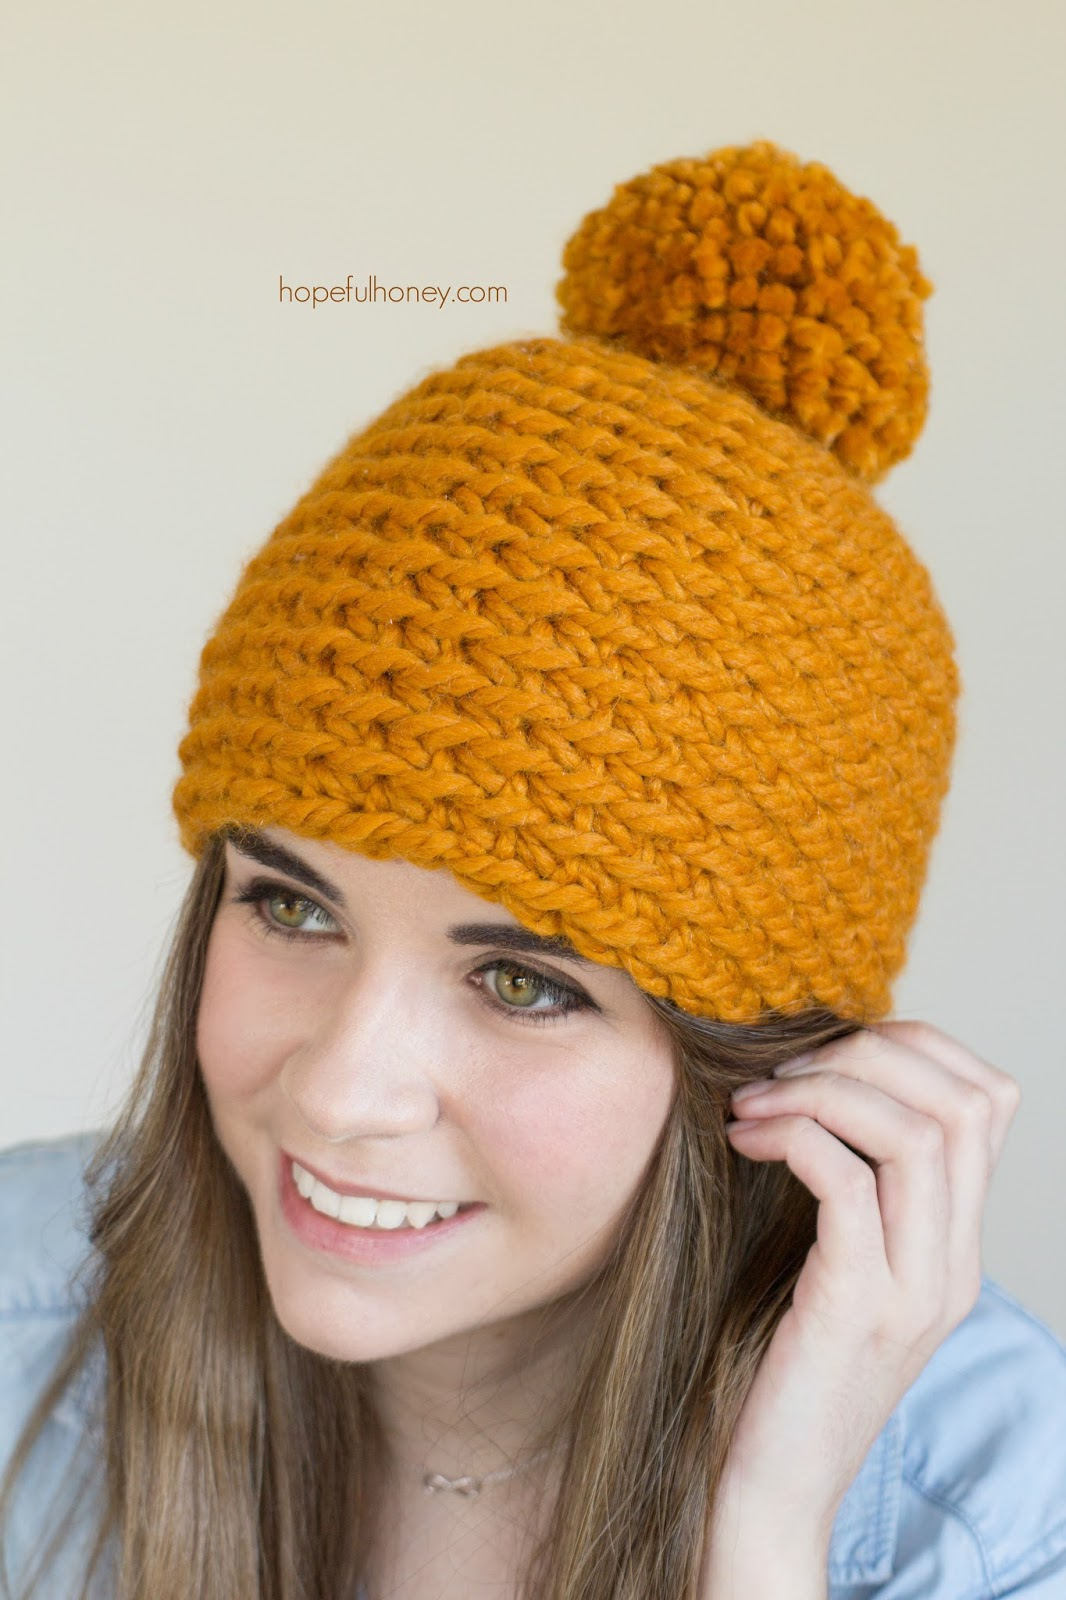 Crochet Hat Patterns Beanie : Hopeful Honey Craft, Crochet, Create: Toffee Apple ...